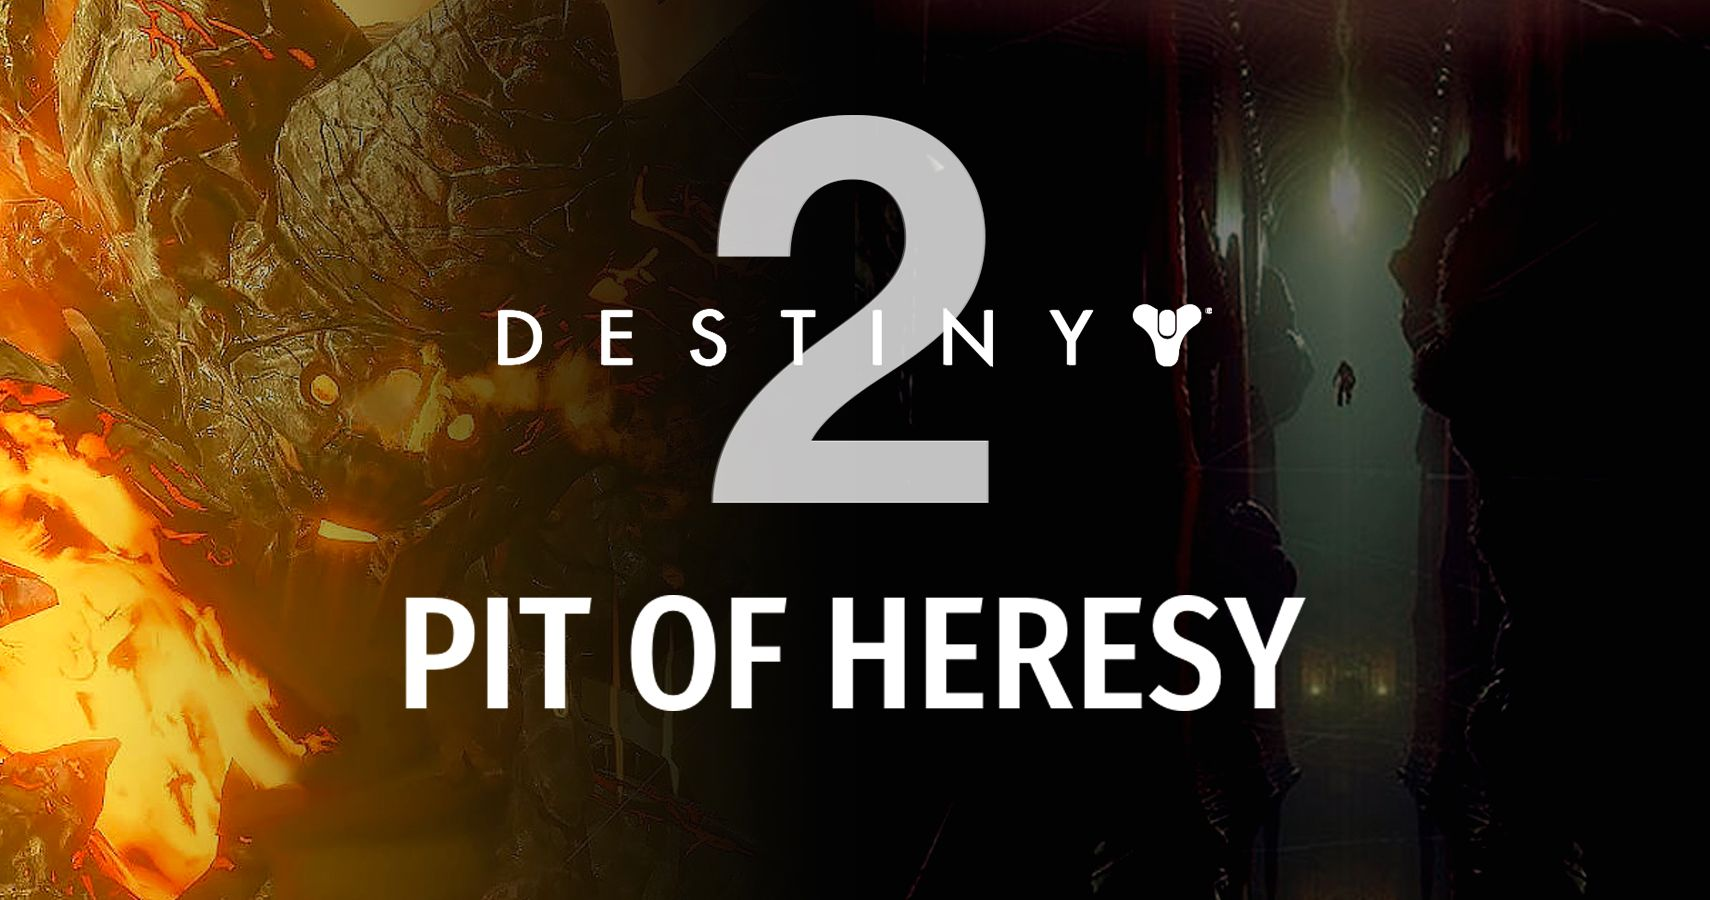 Pit of Heresy Map